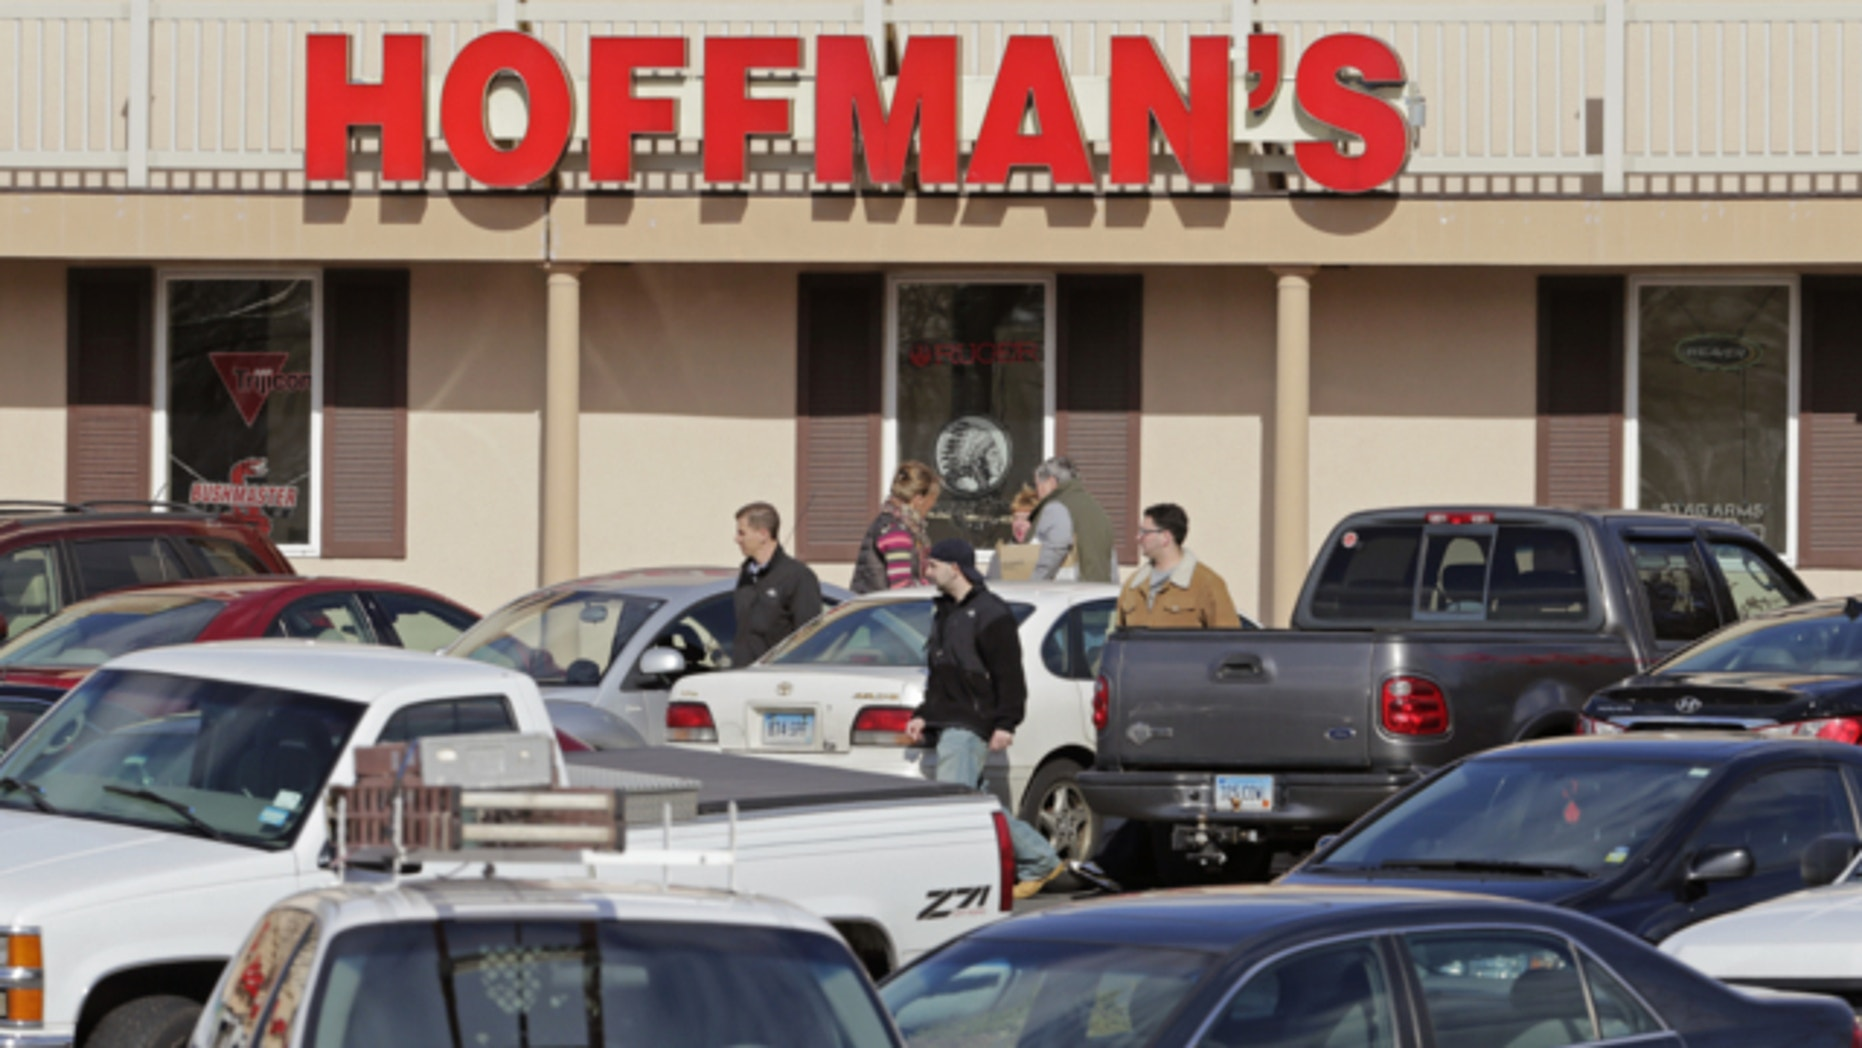 April 2, 2013: Cars jam the parking lot as shoppers leave Hoffman's Gun Center with their purchases in Newington, Conn.